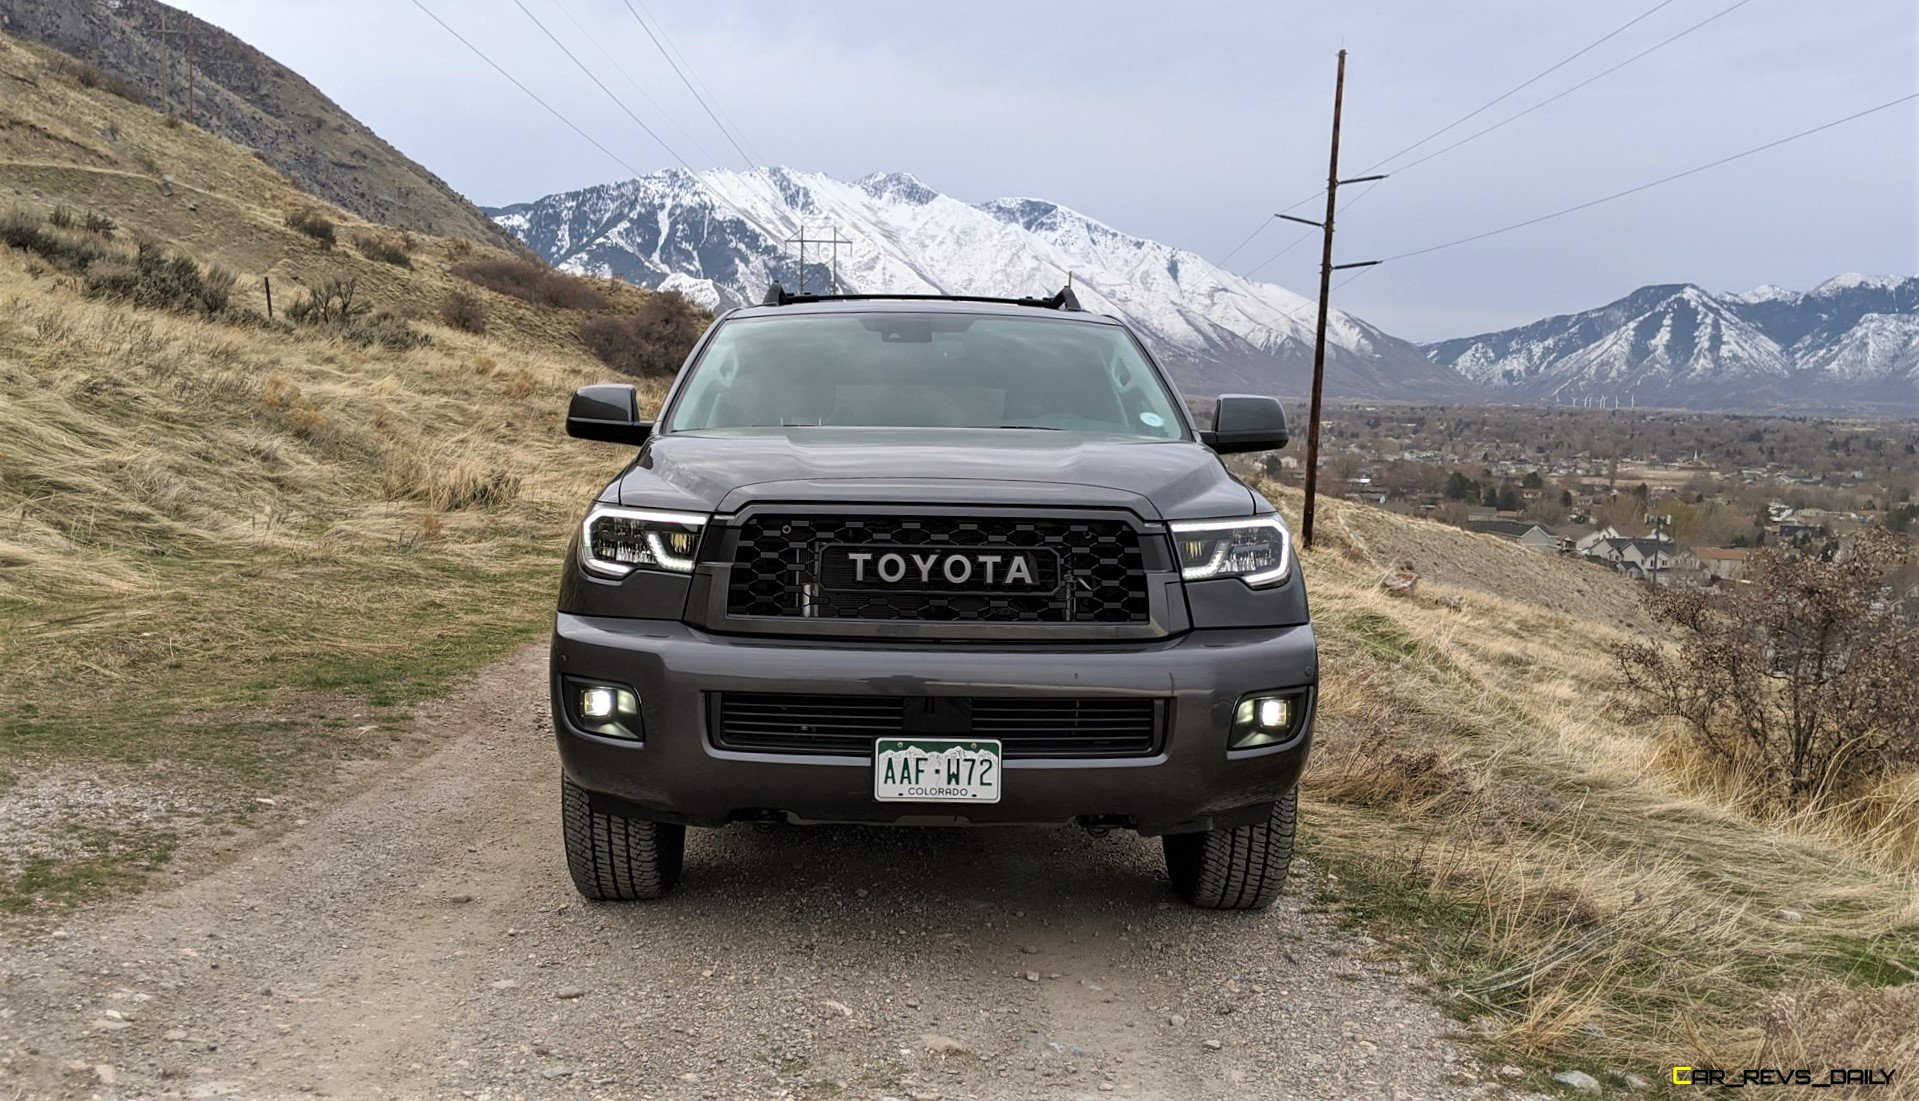 2020 Toyota Sequoia Trd Pro Off Road Review By Matt Barnes Latest News Car Revs Daily Com